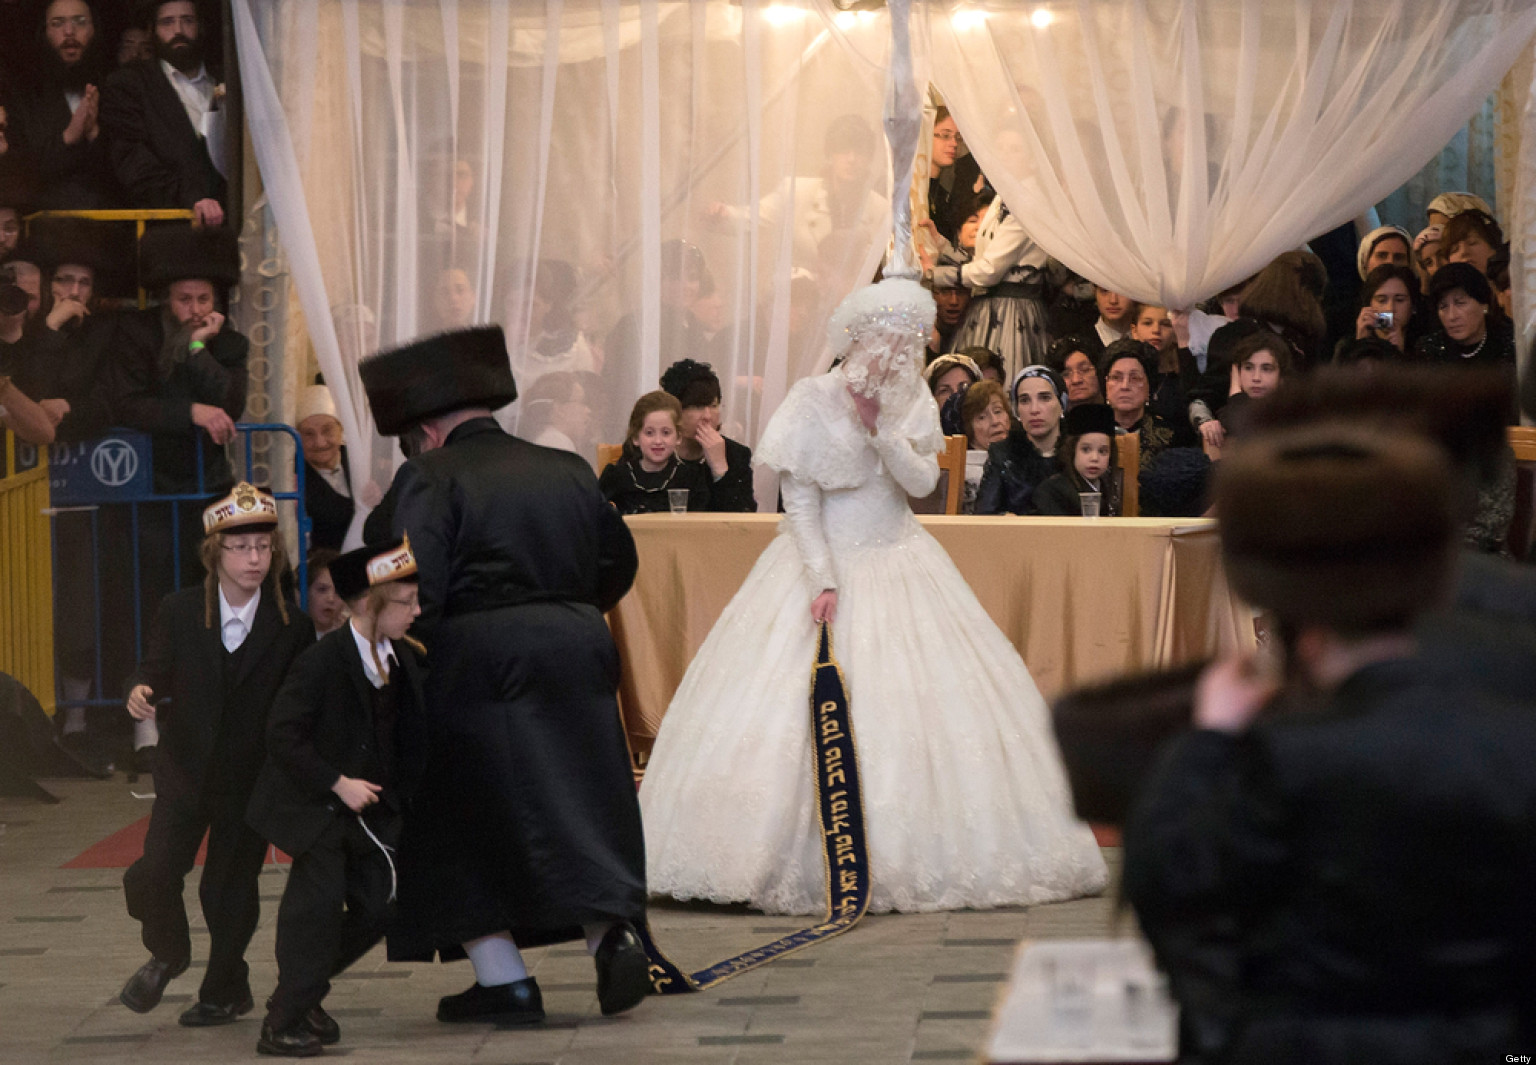 israel civil marriage ban blocks those not considered